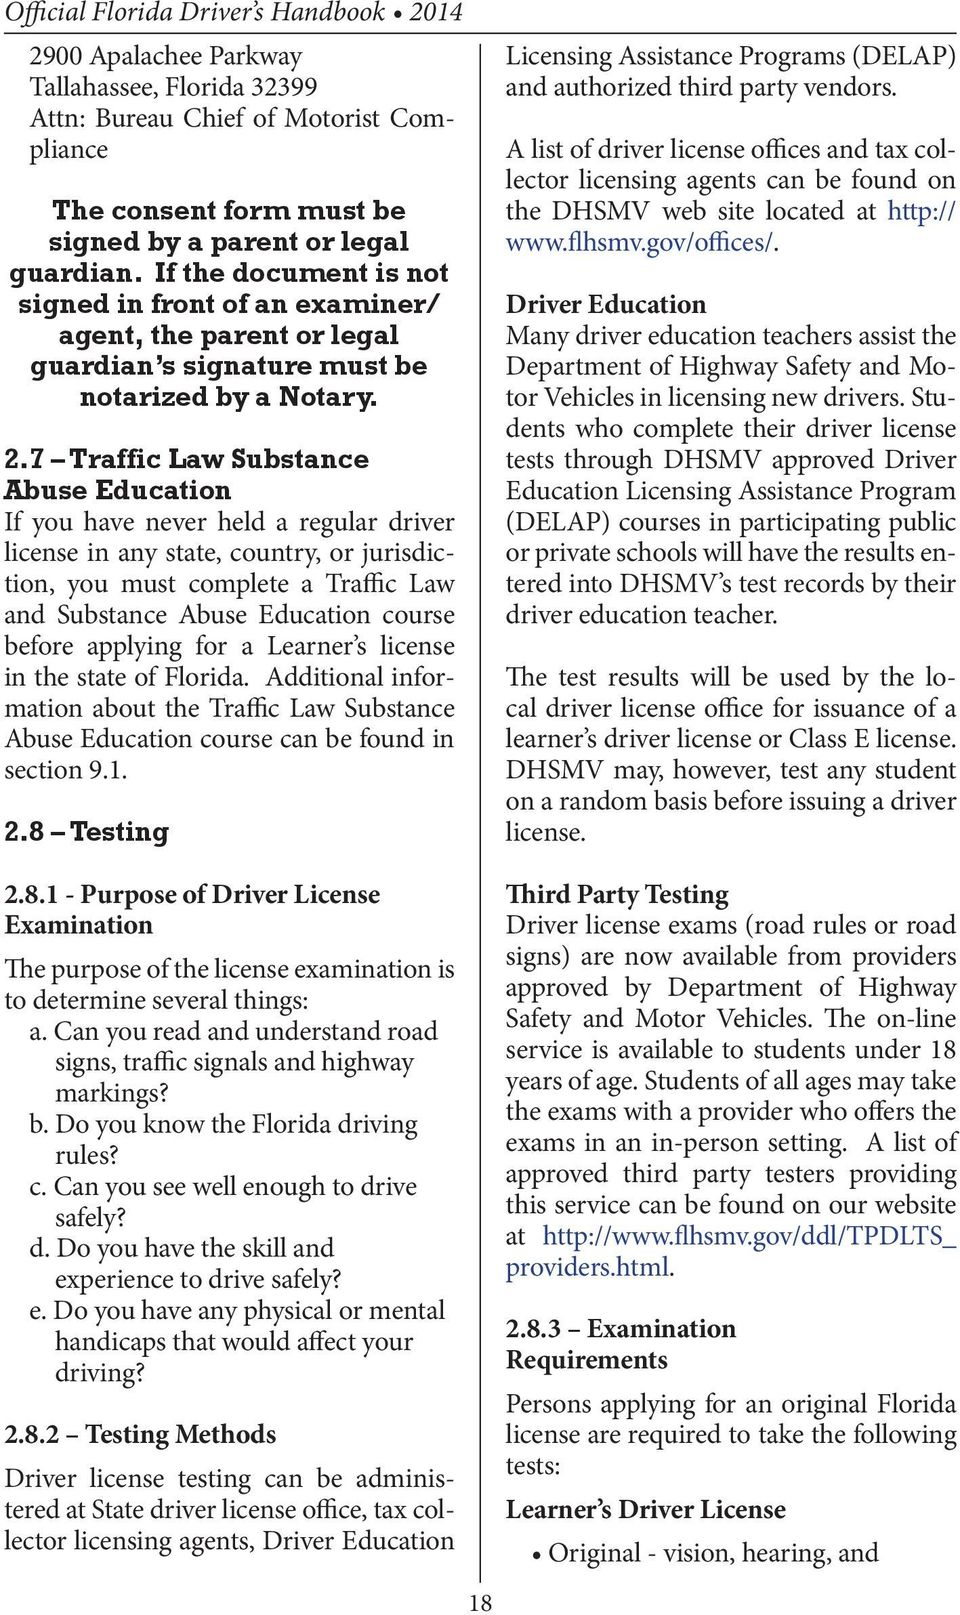 7 Traffic Law Substance Abuse Education If you have never held a regular driver license in any state, country, or jurisdiction, you must complete a Traffic Law and Substance Abuse Education course